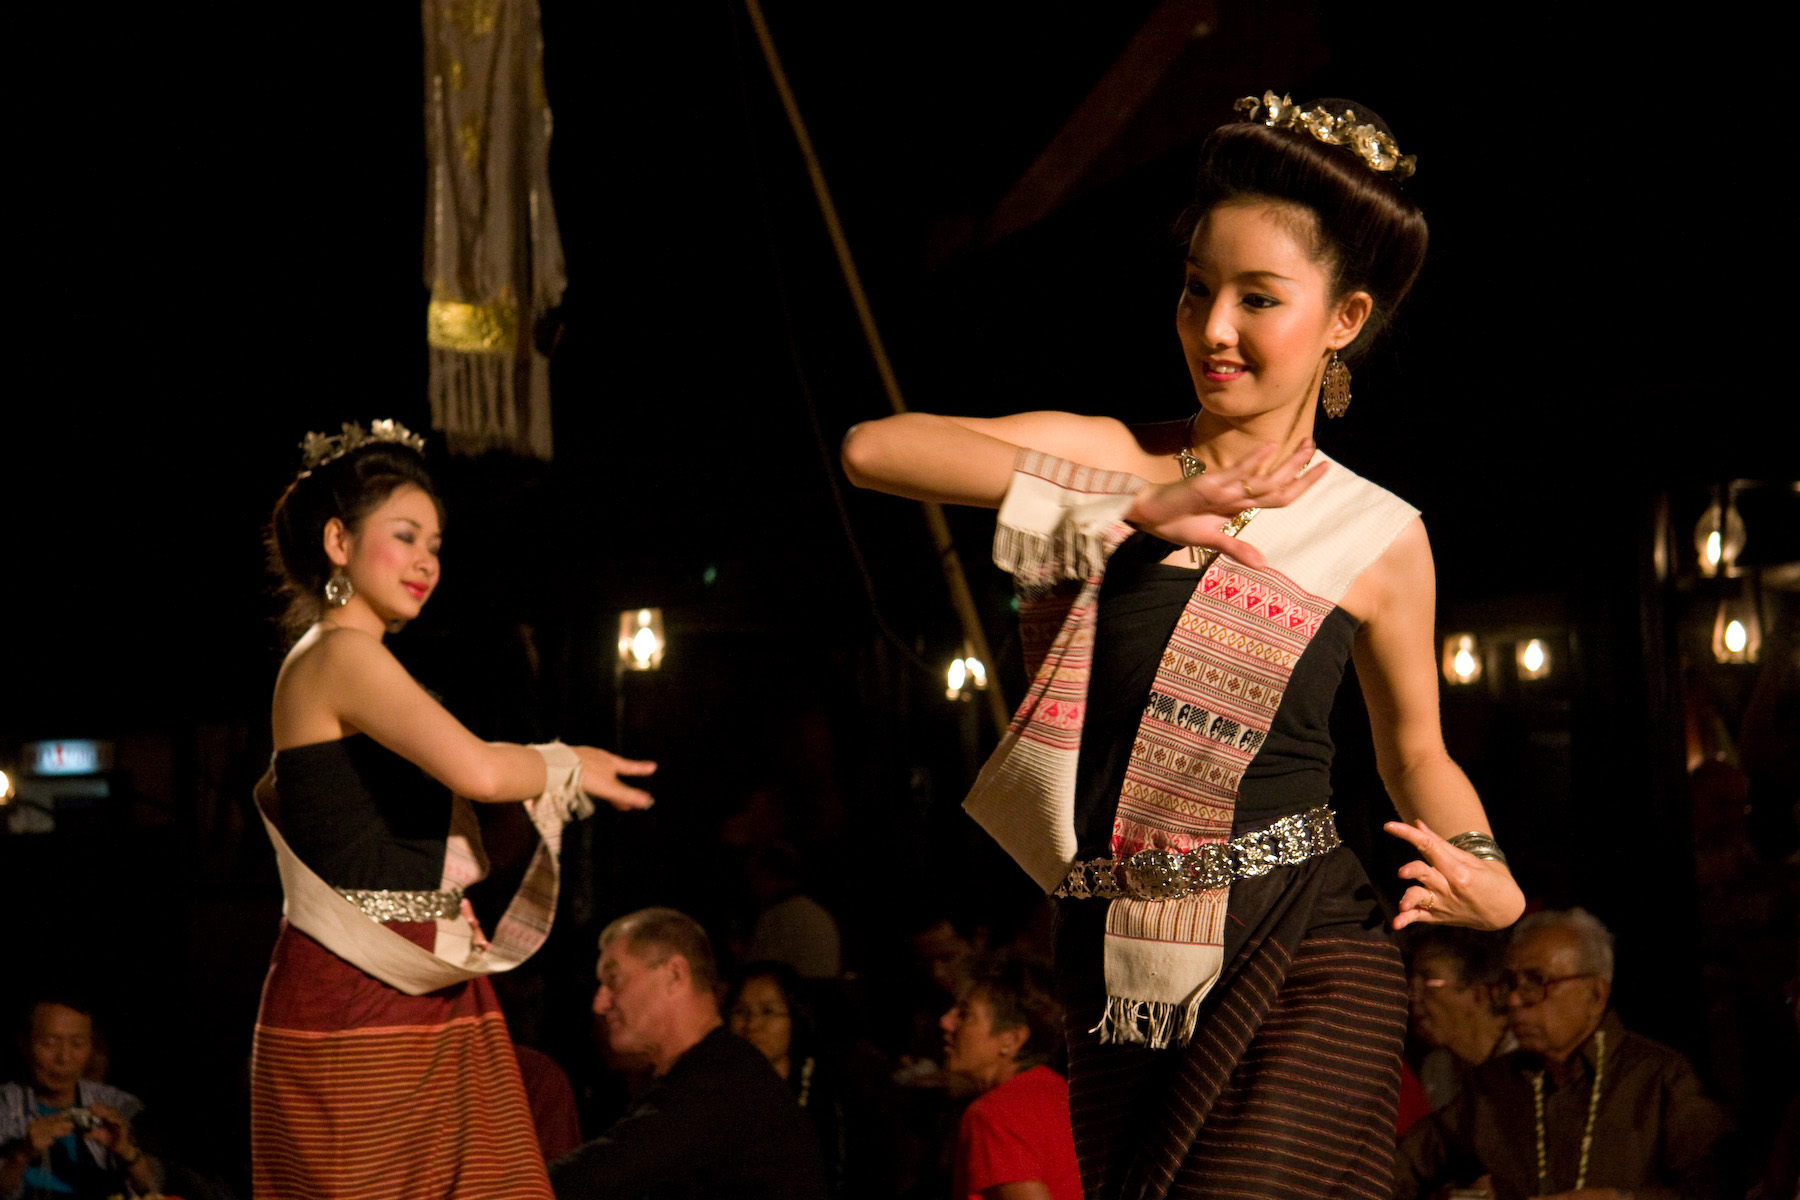 Old Chiangmai: Preserving the Traditions of Thailand